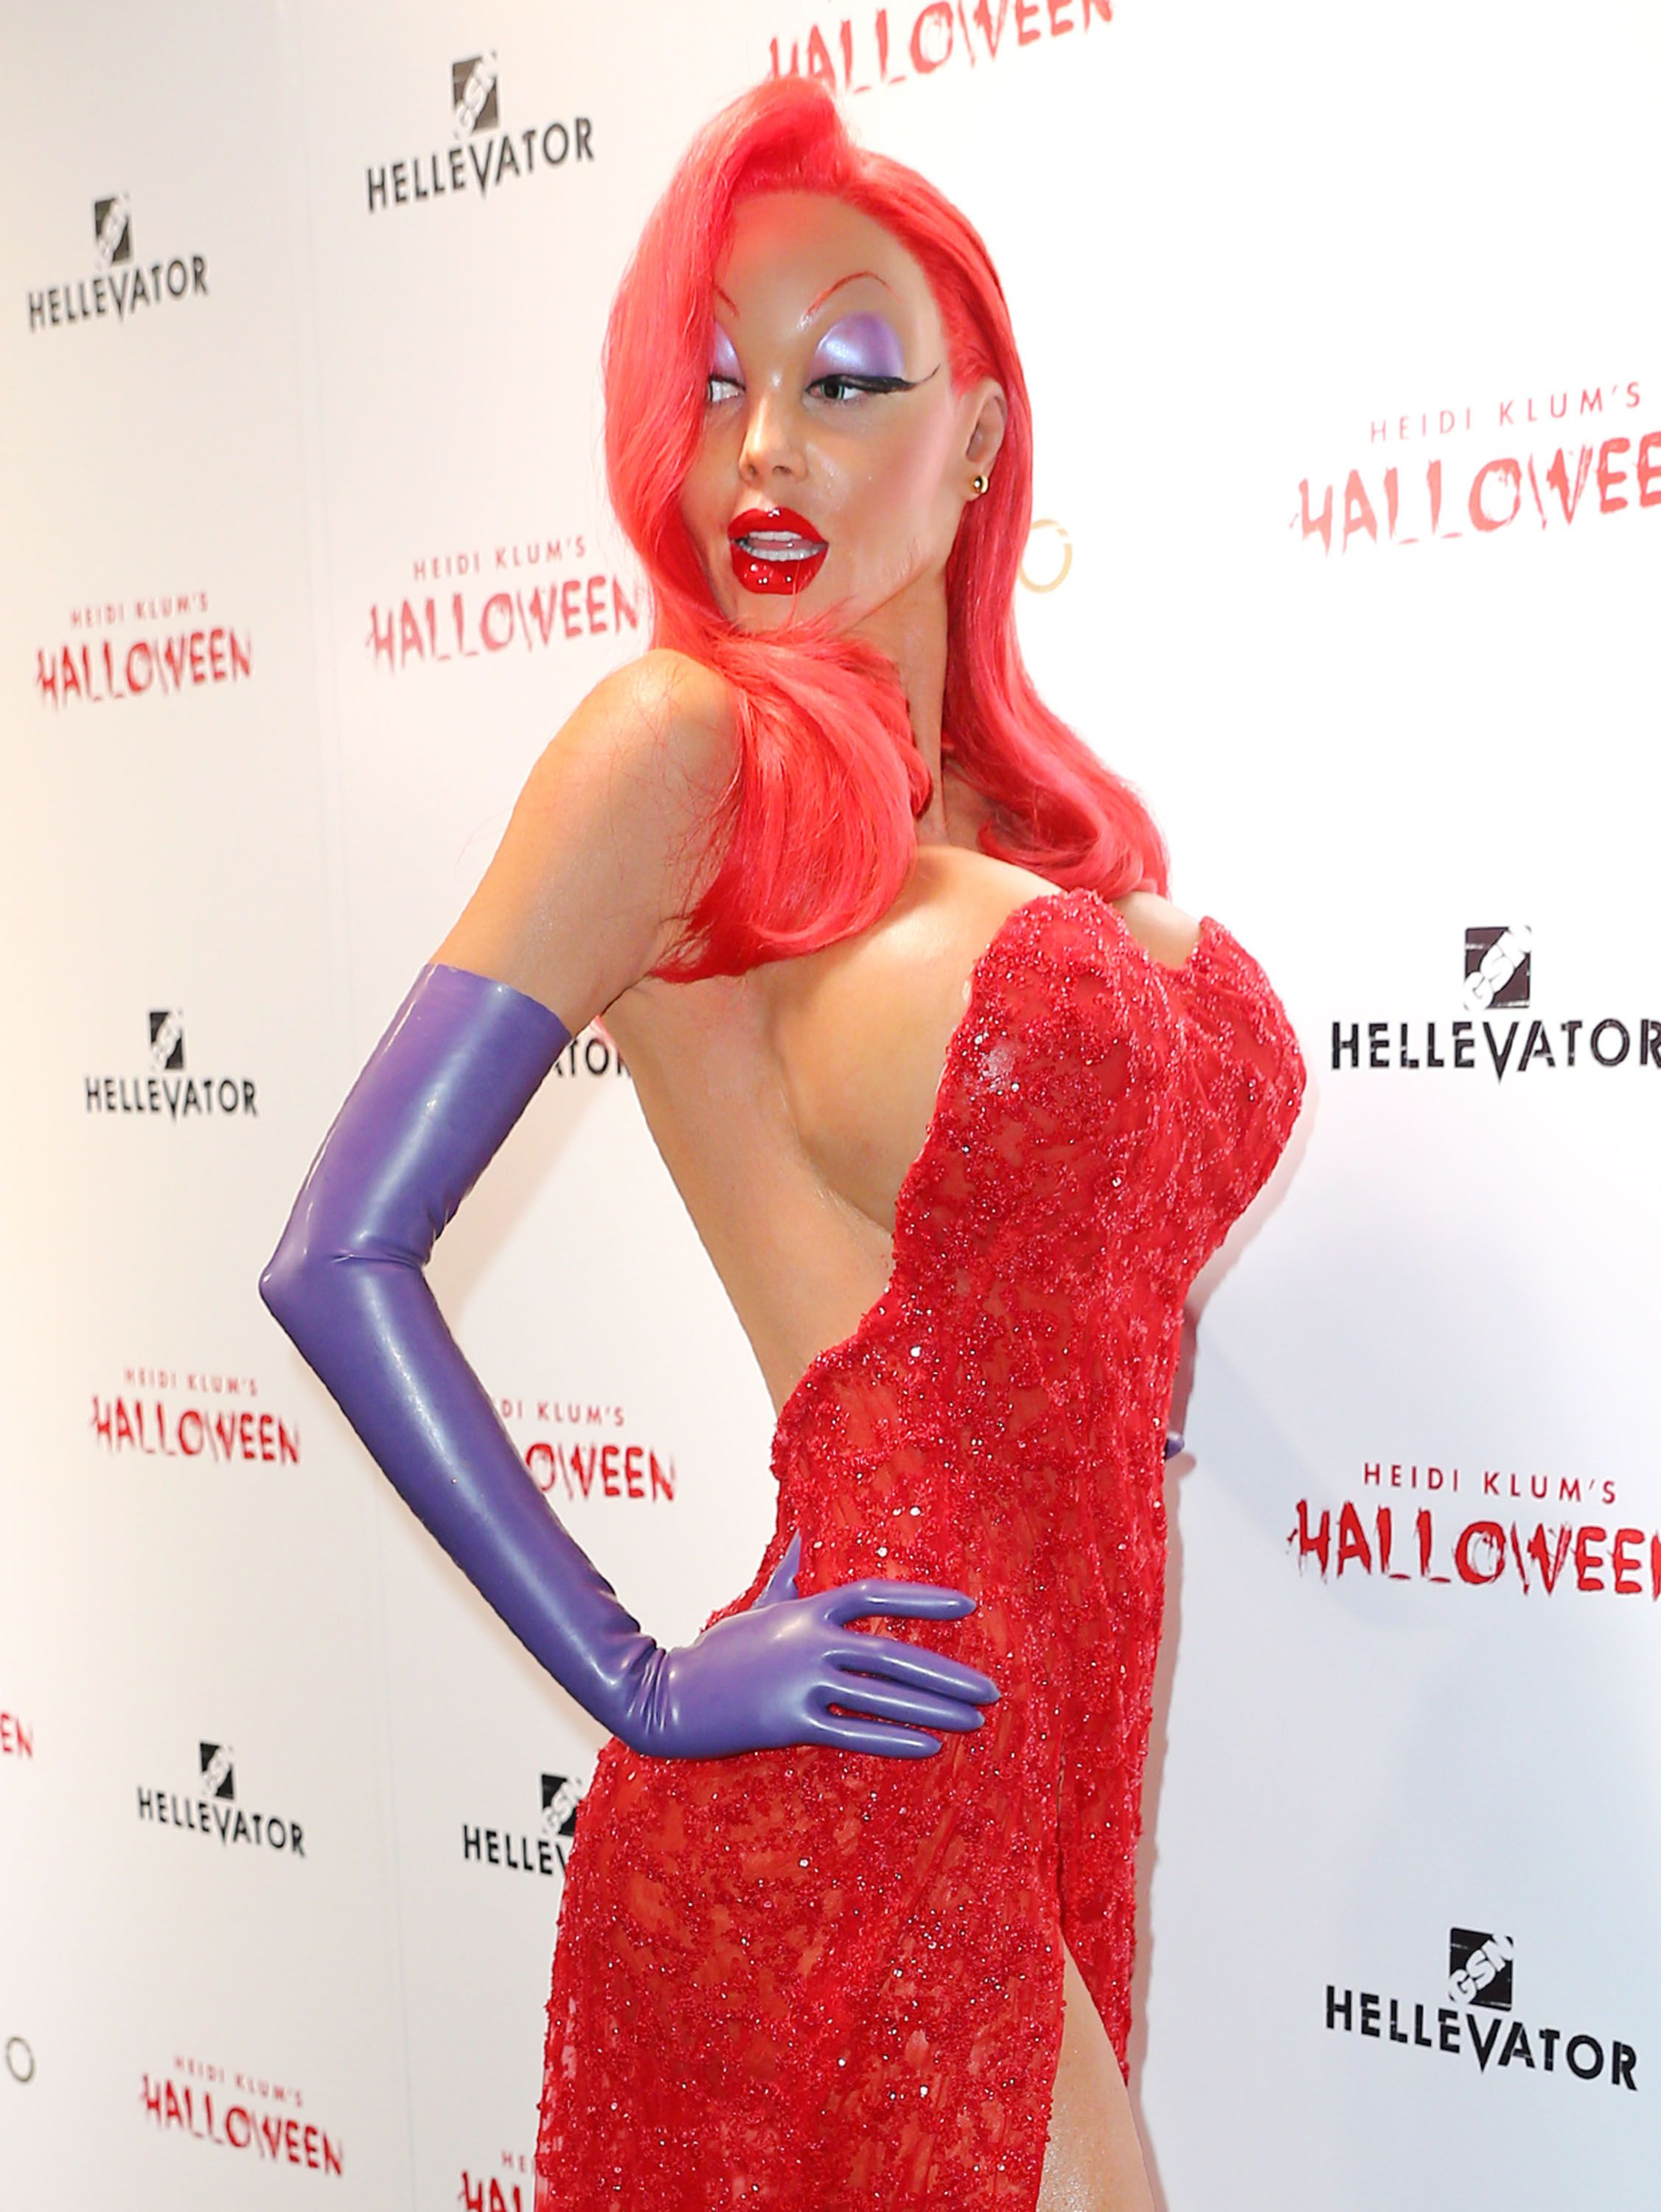 Heidi Klum as Jessica Rabbit, with bright red hair, a voluptuous red dress and prosthetic makeup.